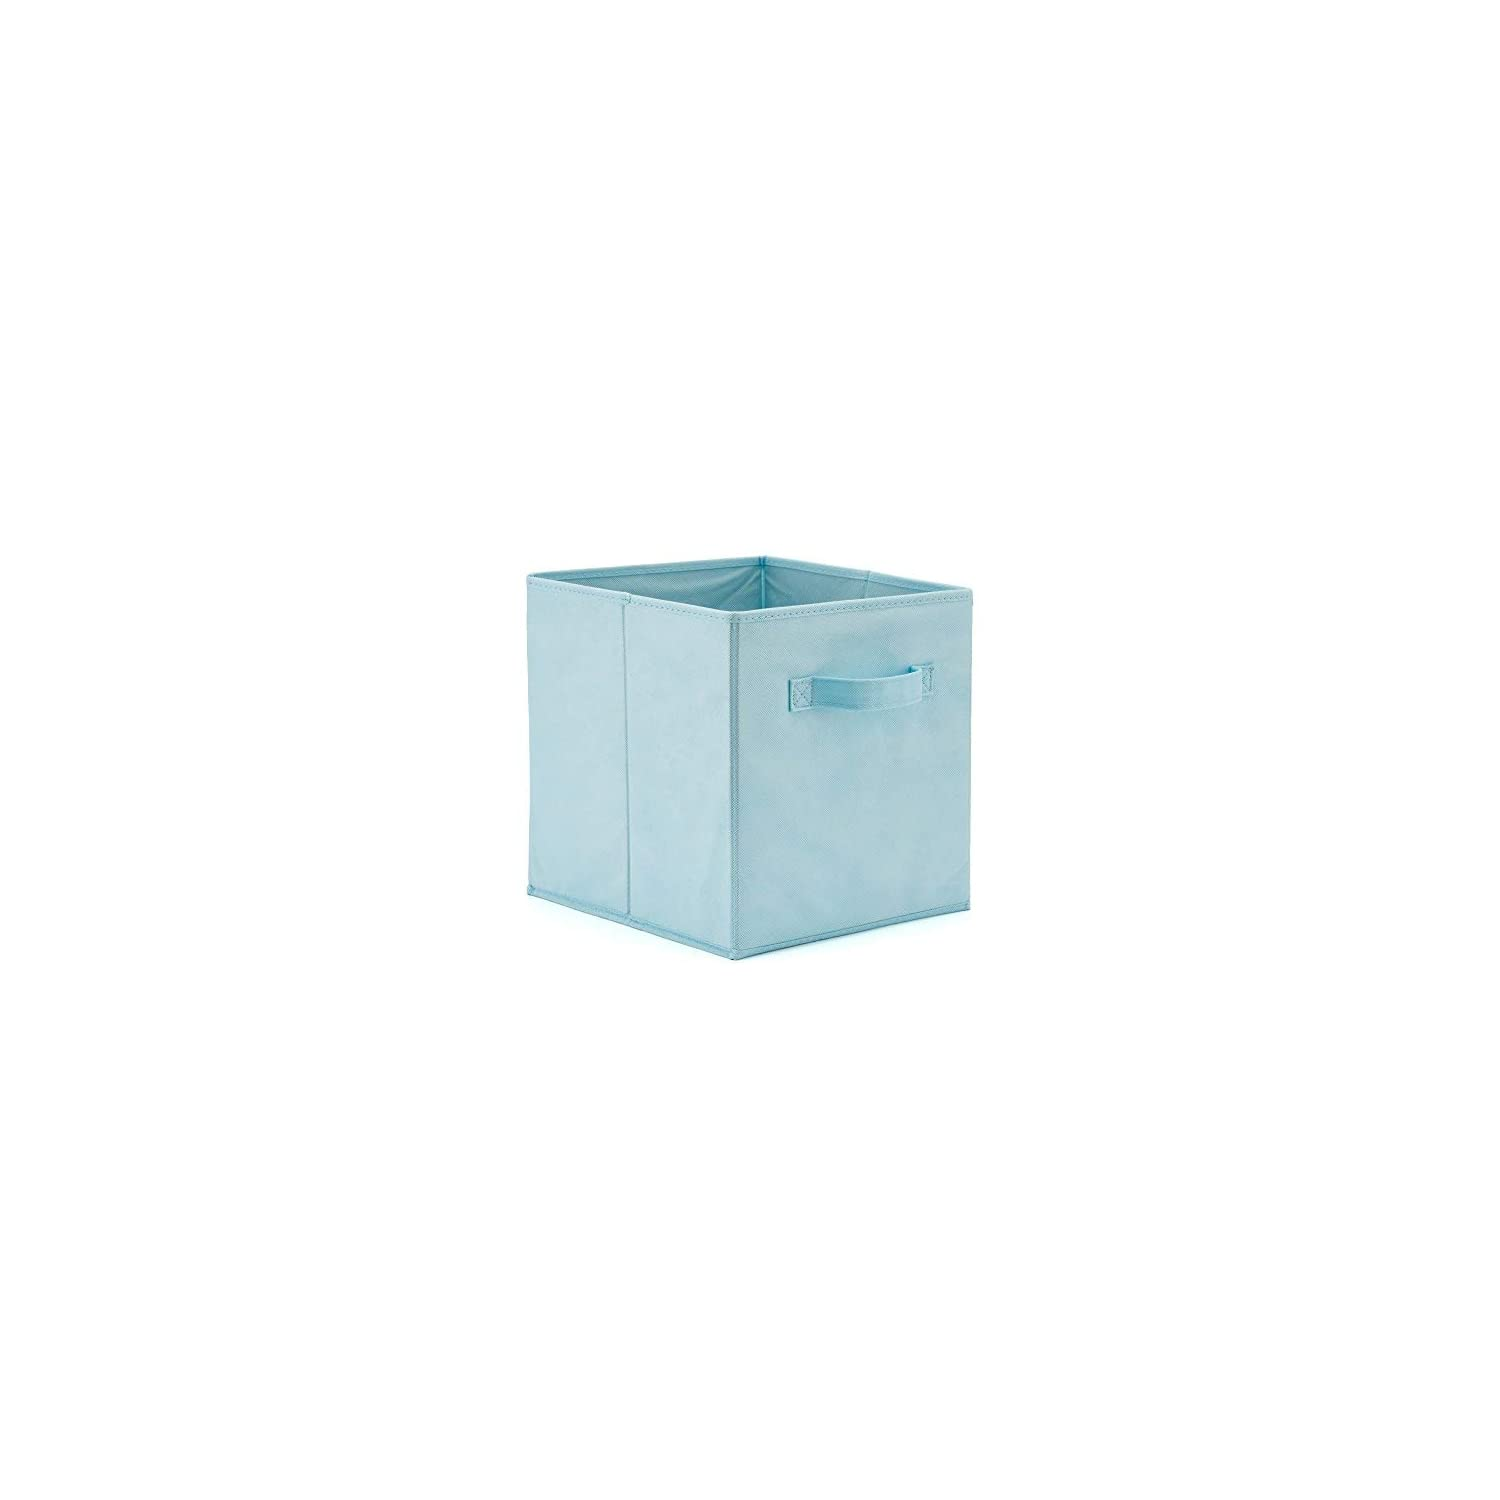 EZOWare Set of 4 Foldable Fabric Basket Bins, Collapsible Storage Cube for Nursery Home and Office (10.5X 10.5 x 11 inch) (Assorted Color)